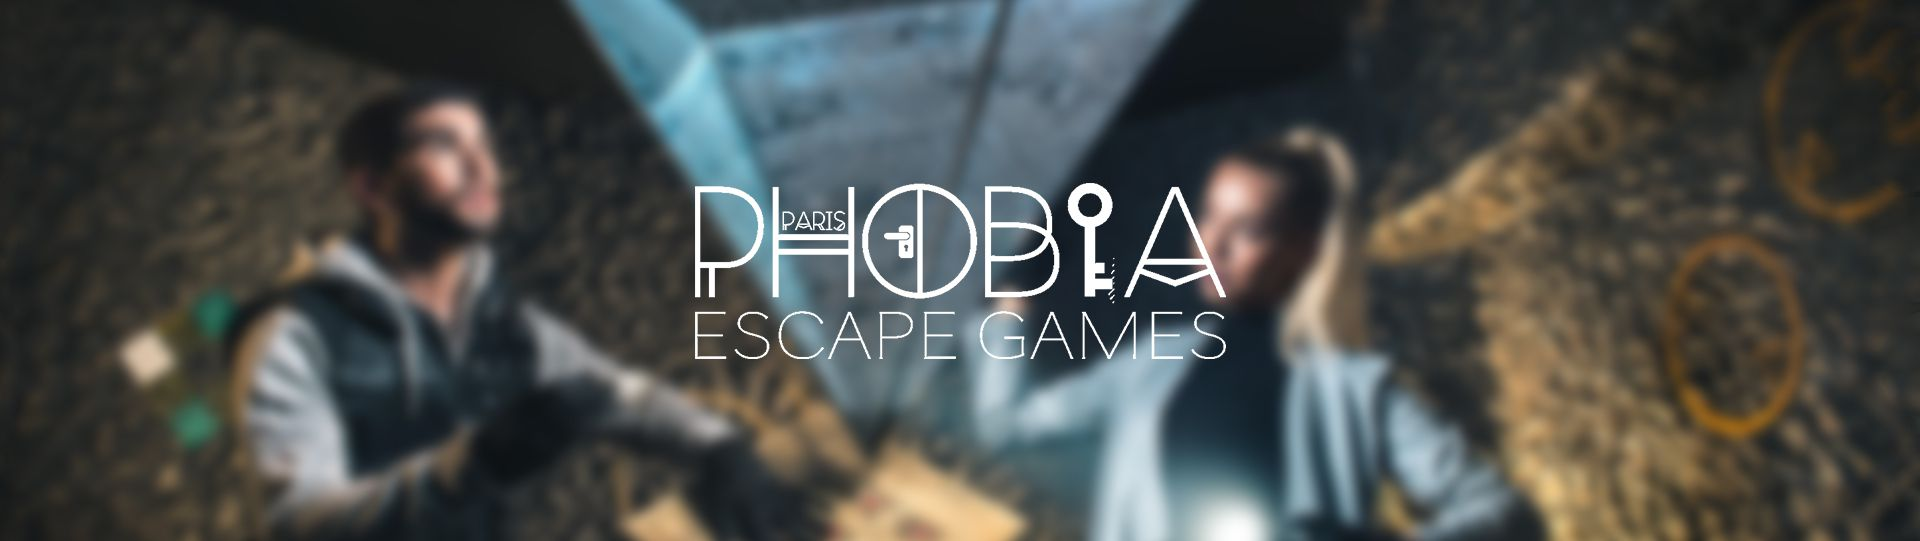 phobia da vinci escape game paris.jpg